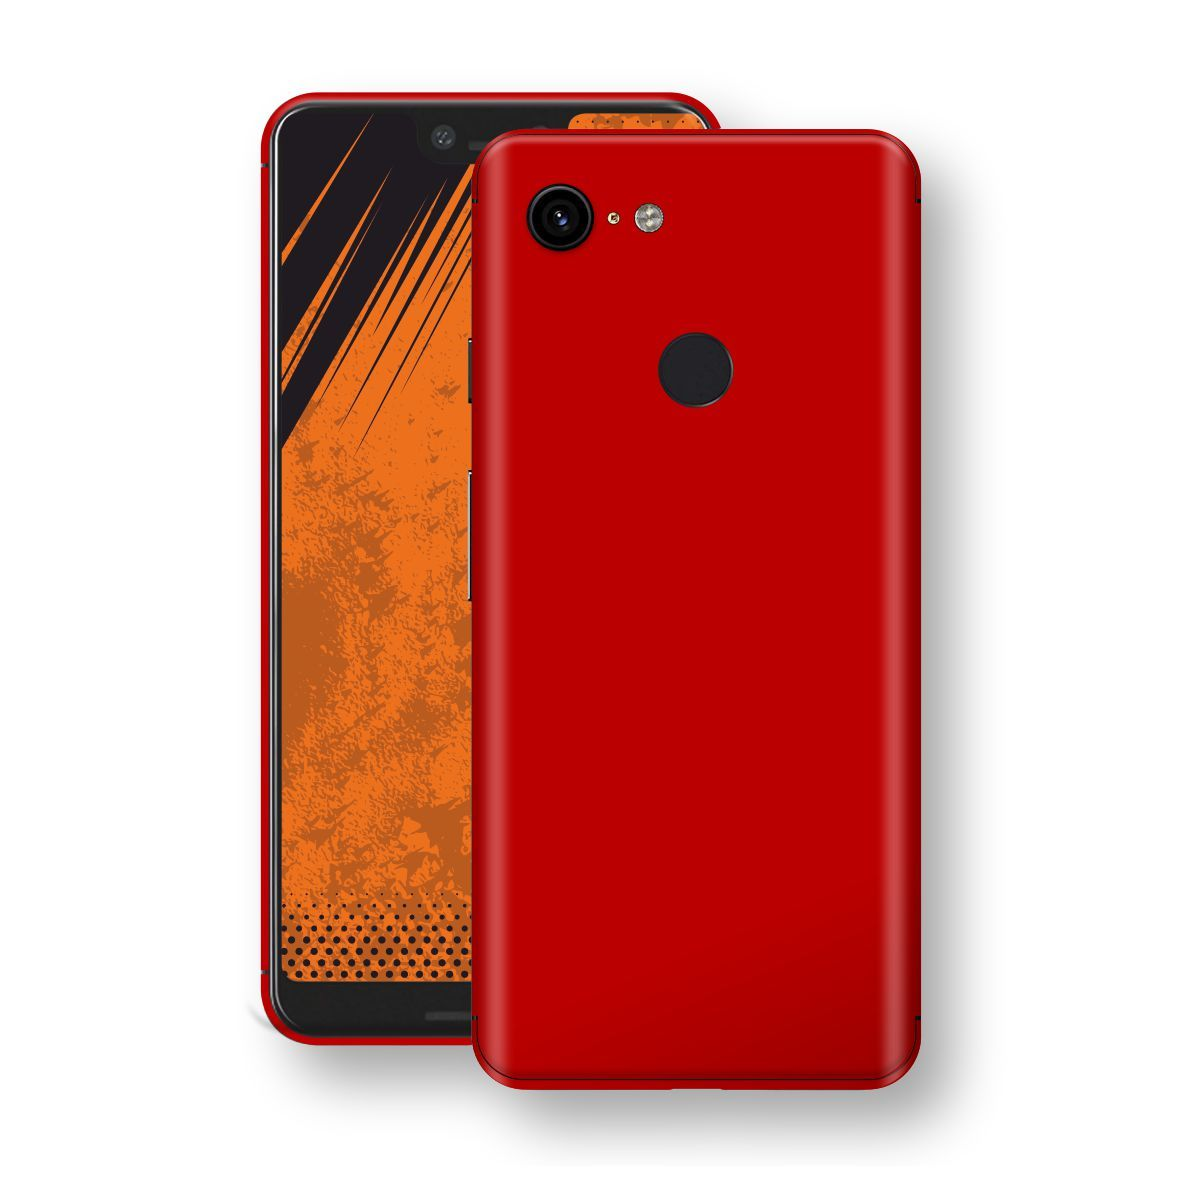 Google Pixel 3 XL Deep Red Glossy Gloss Finish Skin, Decal, Wrap, Protector, Cover by EasySkinz | EasySkinz.com